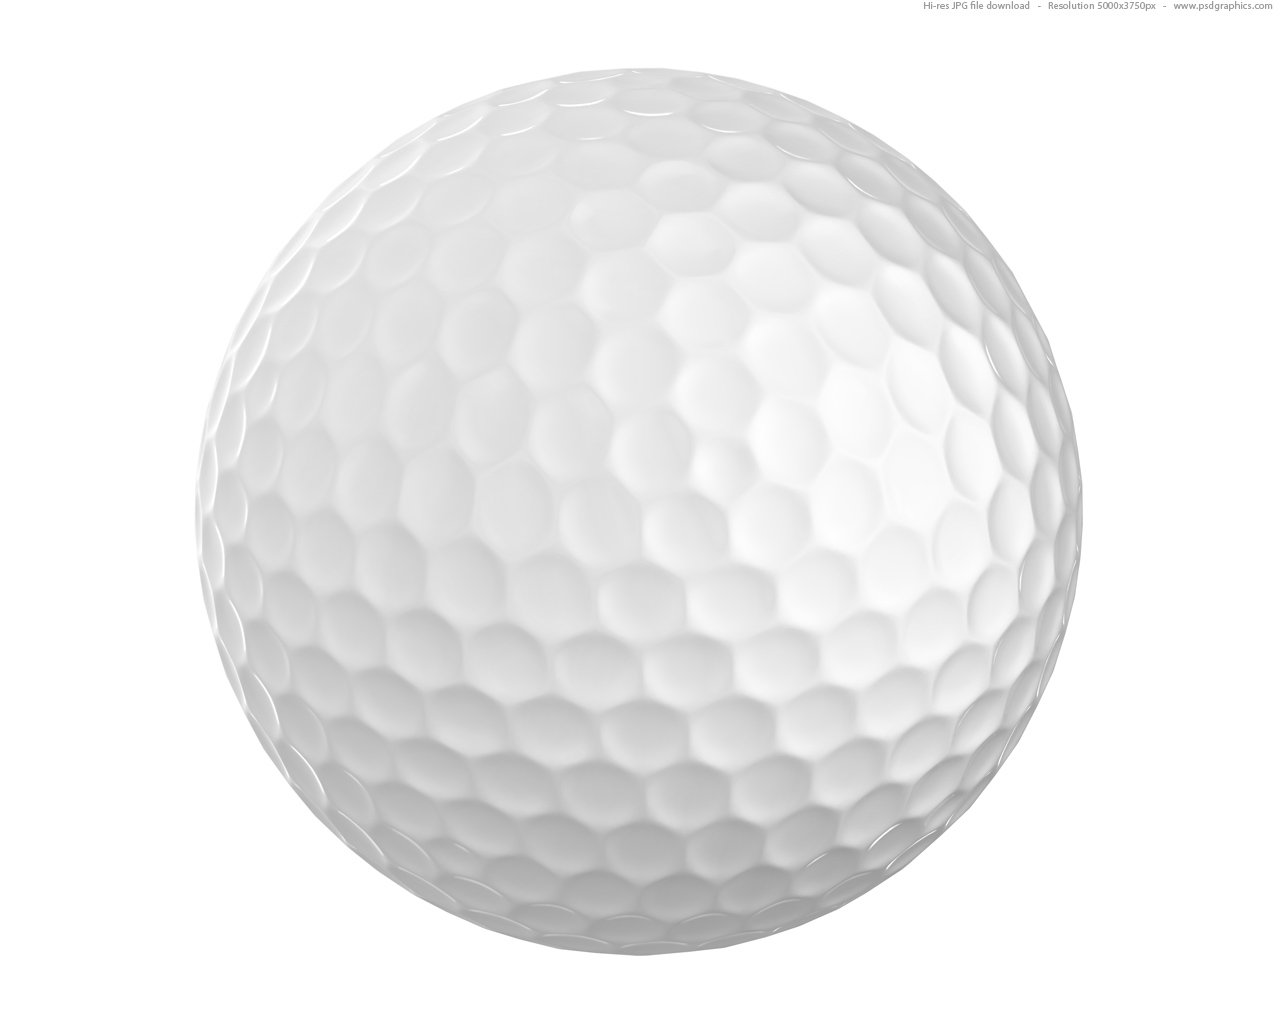 Color Theme White Gray Keywords White Plastic Sphere Soft Gradients No